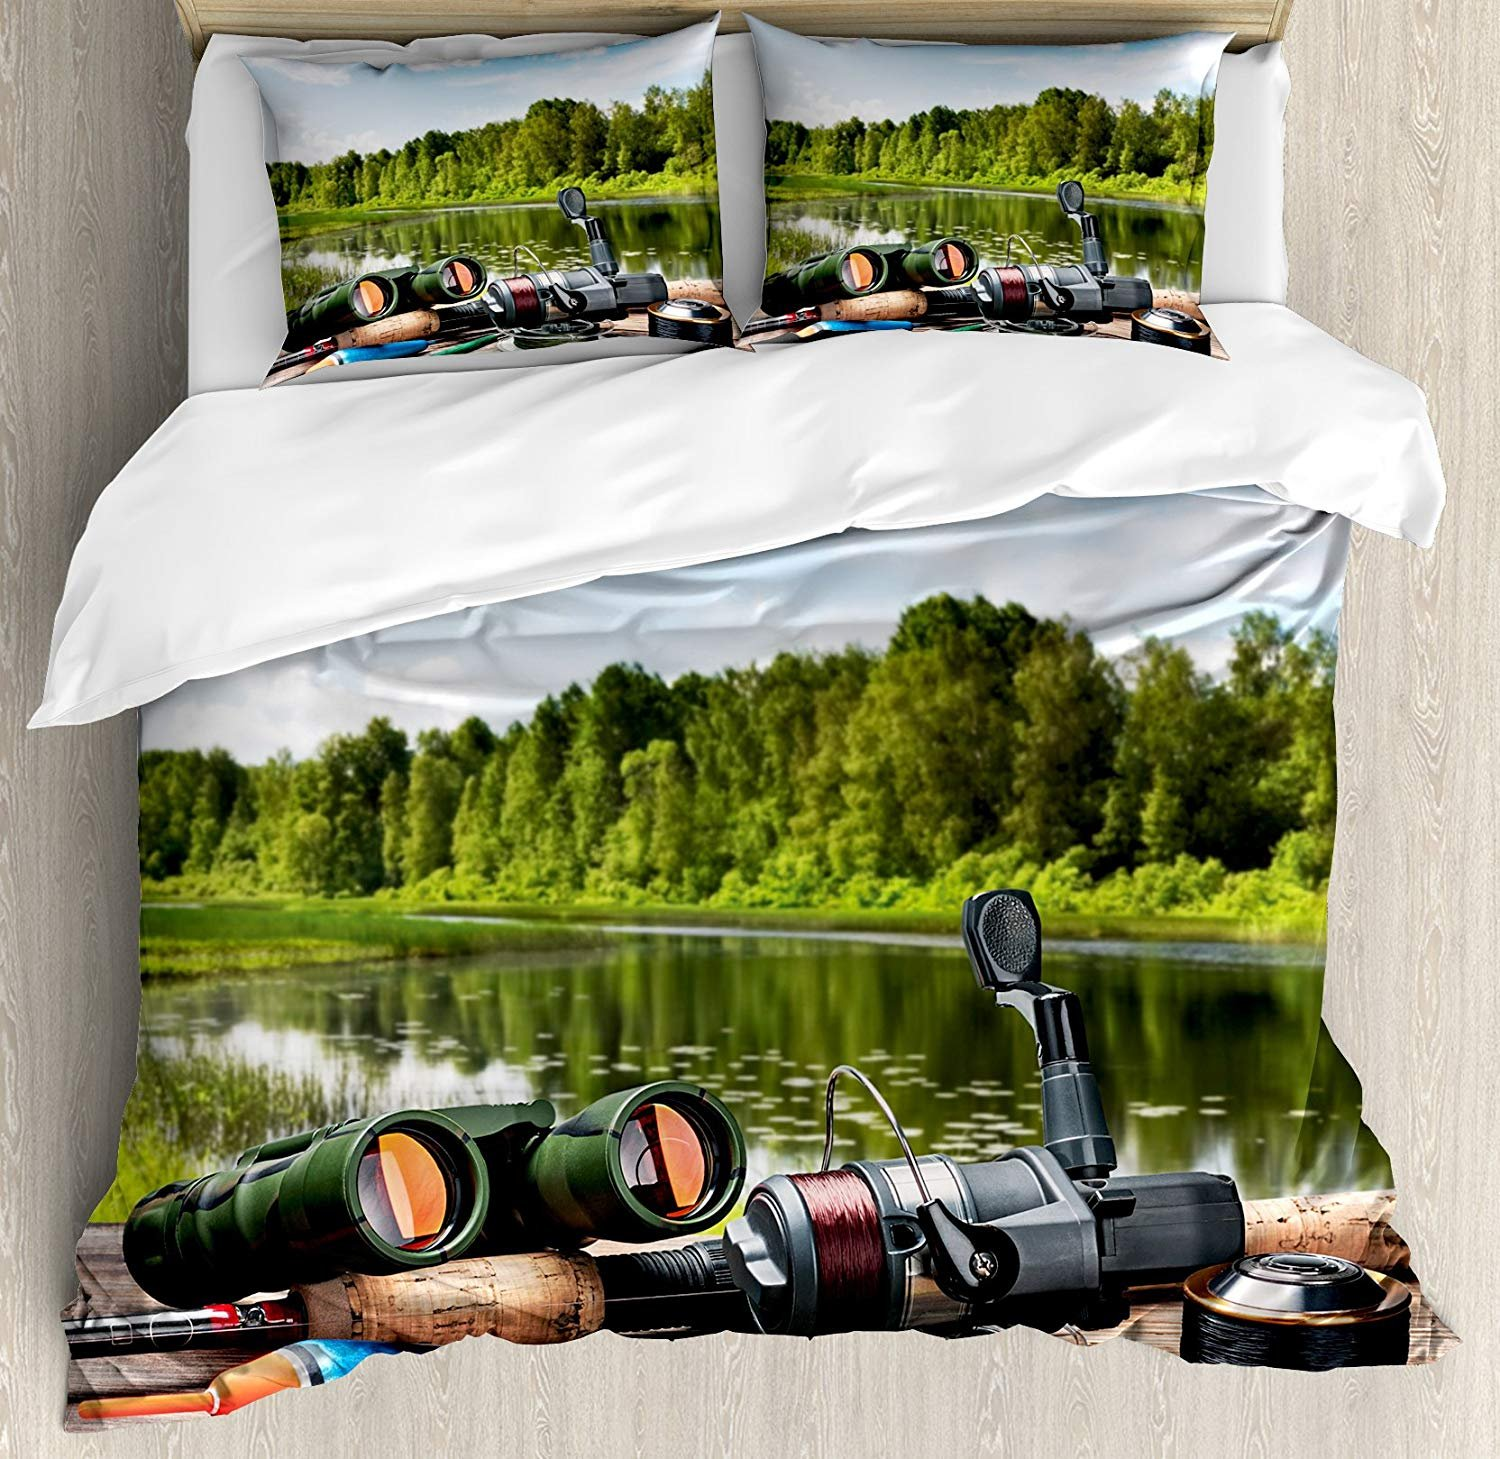 Hunting Decor Twin Duvet Cover Sets 4 Piece Bedding Set Bedspread with 2 Pillow Sham, Flat Sheet for Adult/Kids/Teens, Fishing Tackle on a Pontoon Lake in the Woods Trees Greenery Freshwater Hobby